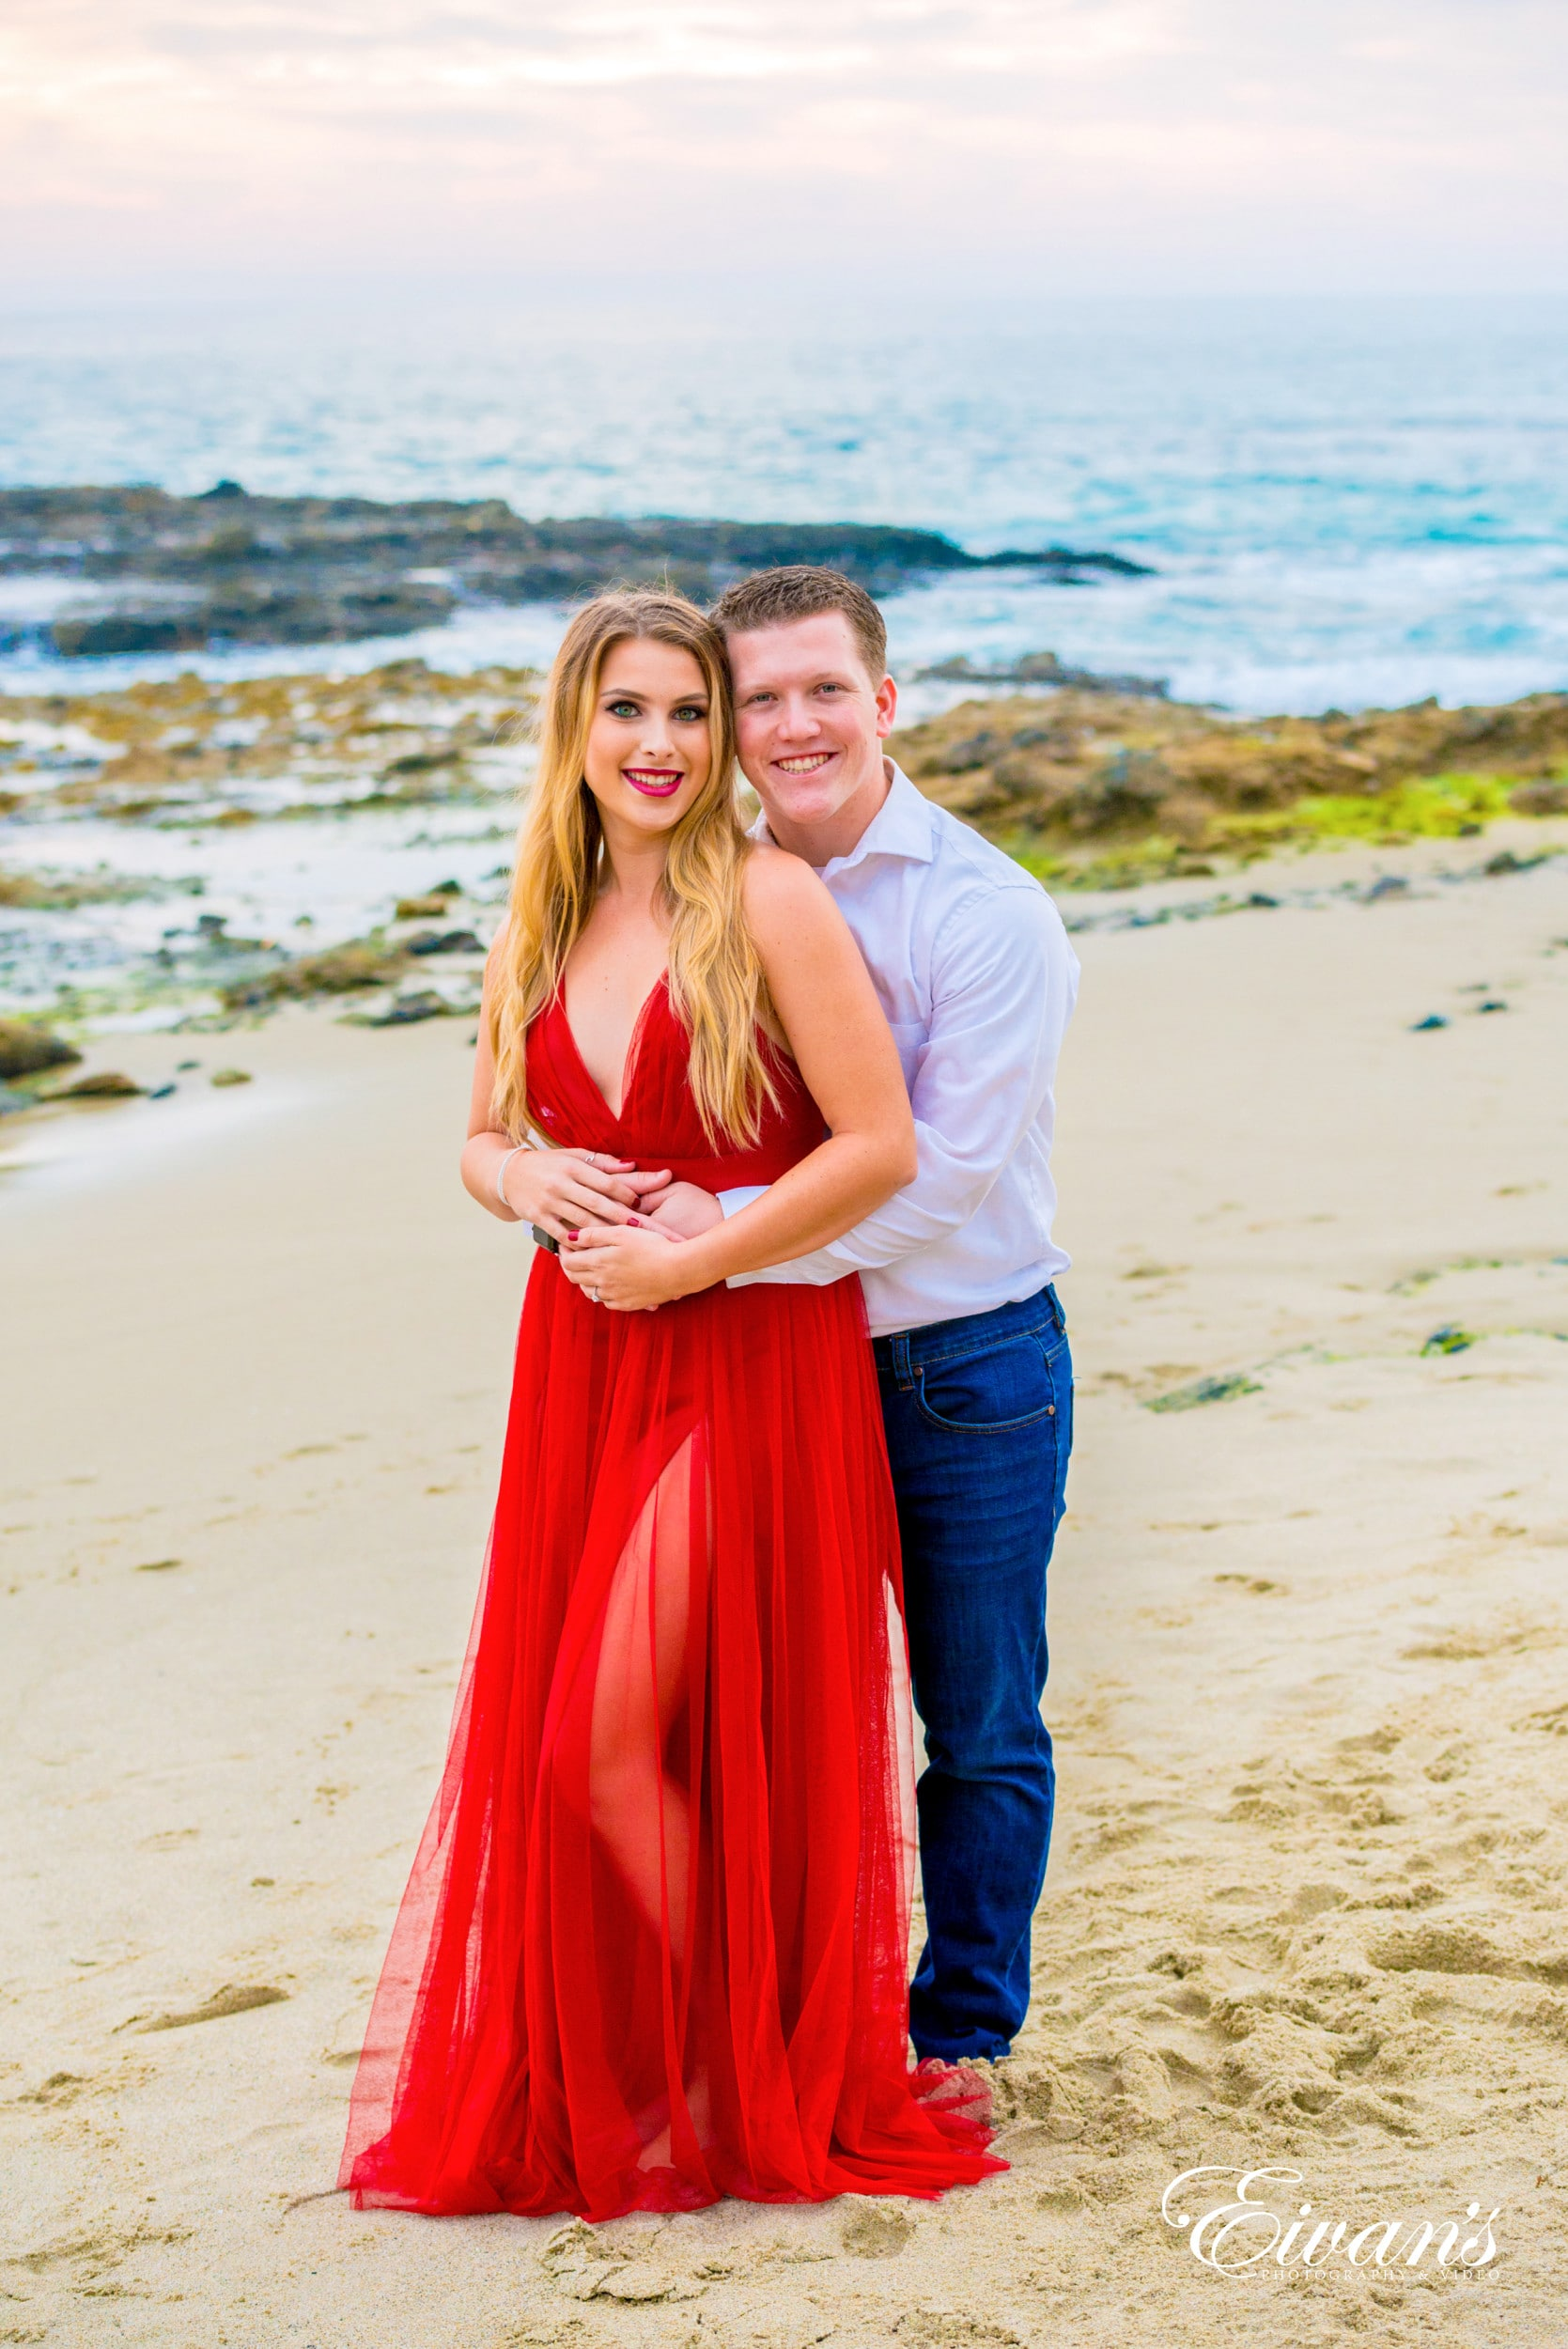 woman in red dress standing beside man in white t-shirt on beach during daytime